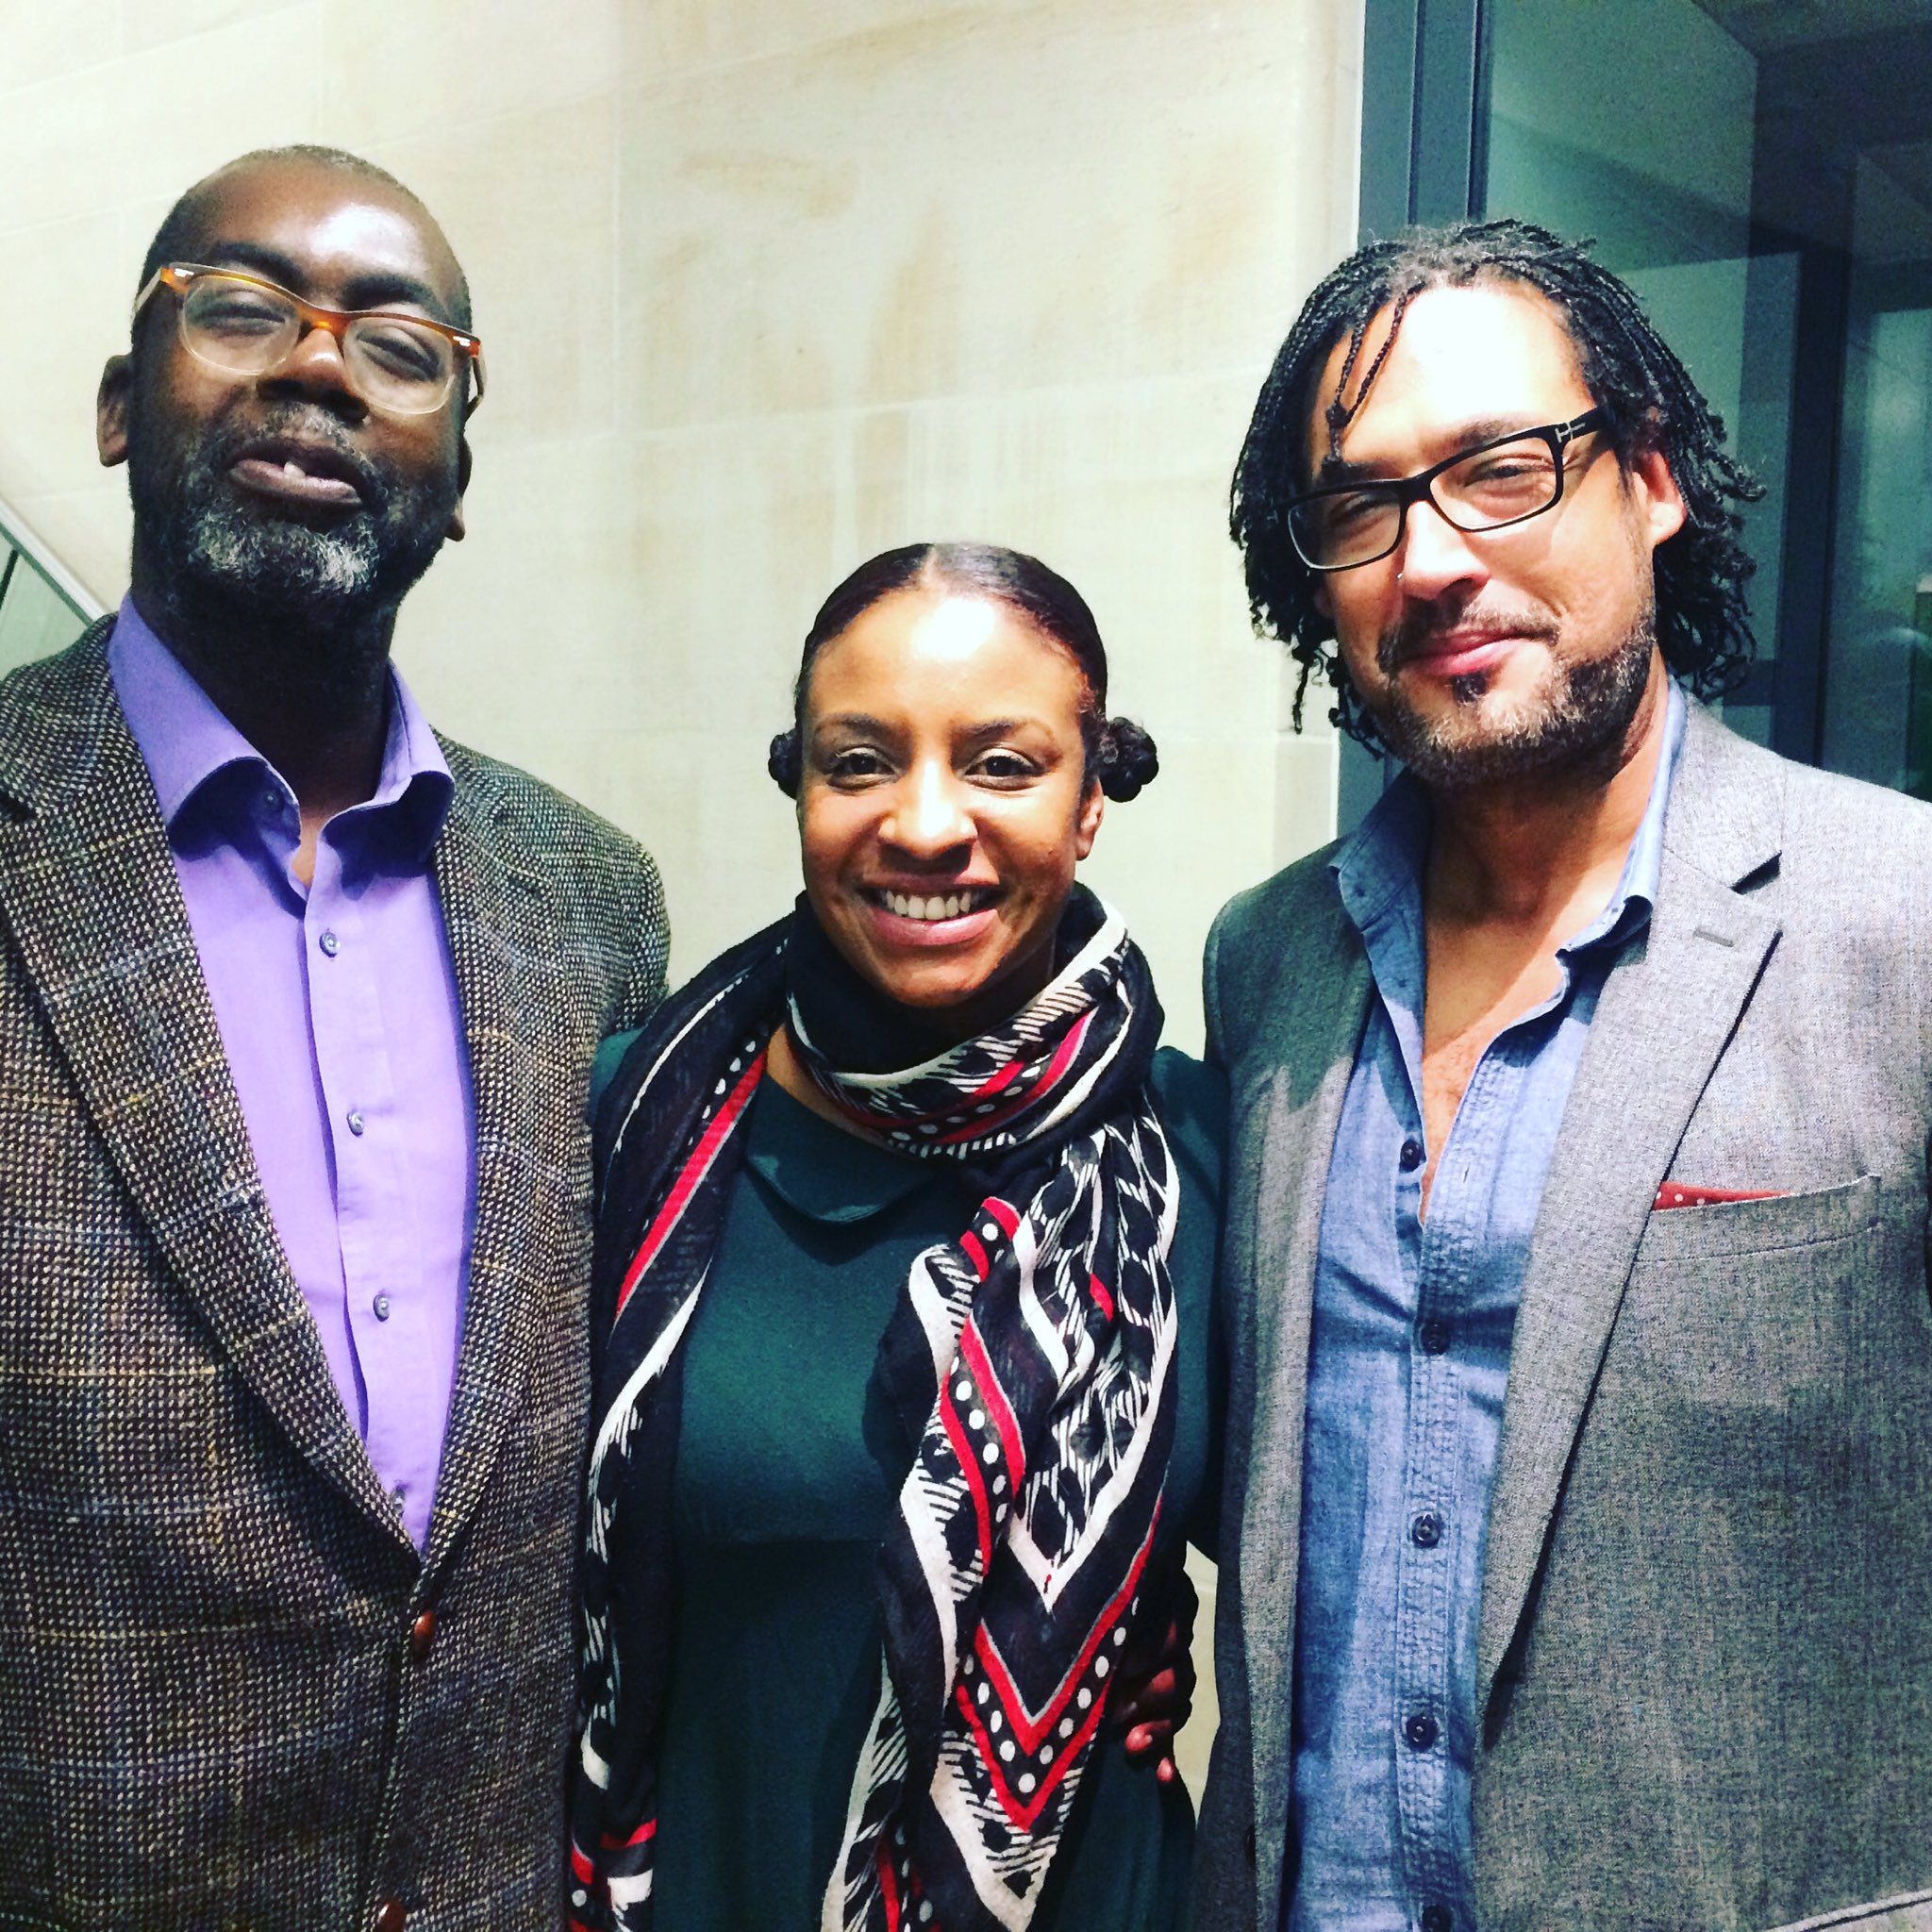 A fascinating evening at @bcaheritage. Here's me with @ppvernon and  @DavidOlusoga https://t.co/KqNnFpKgyy